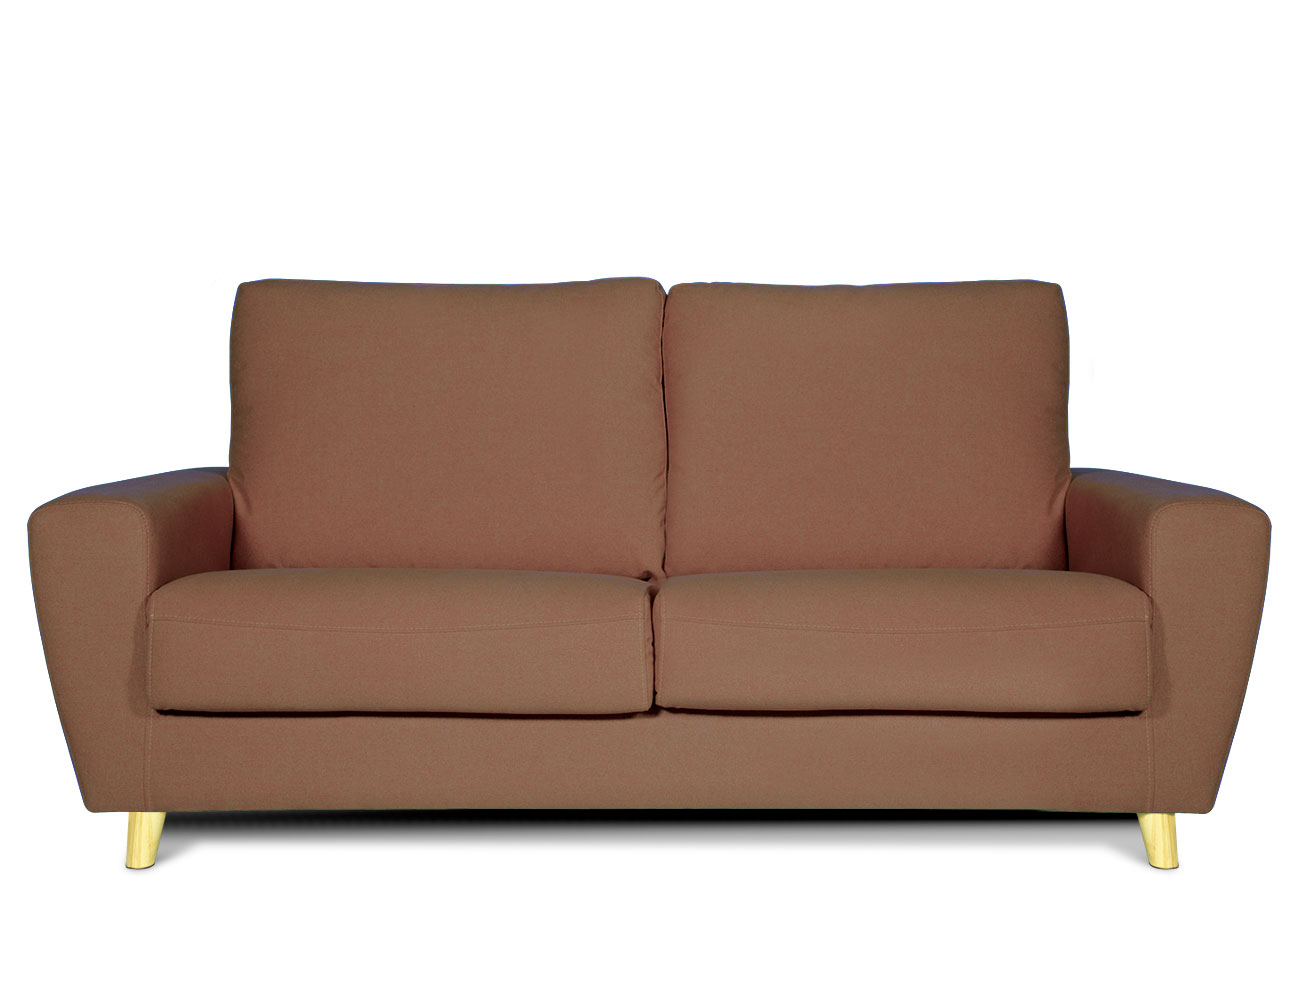 Sofa 3 plazas moderno chocolate